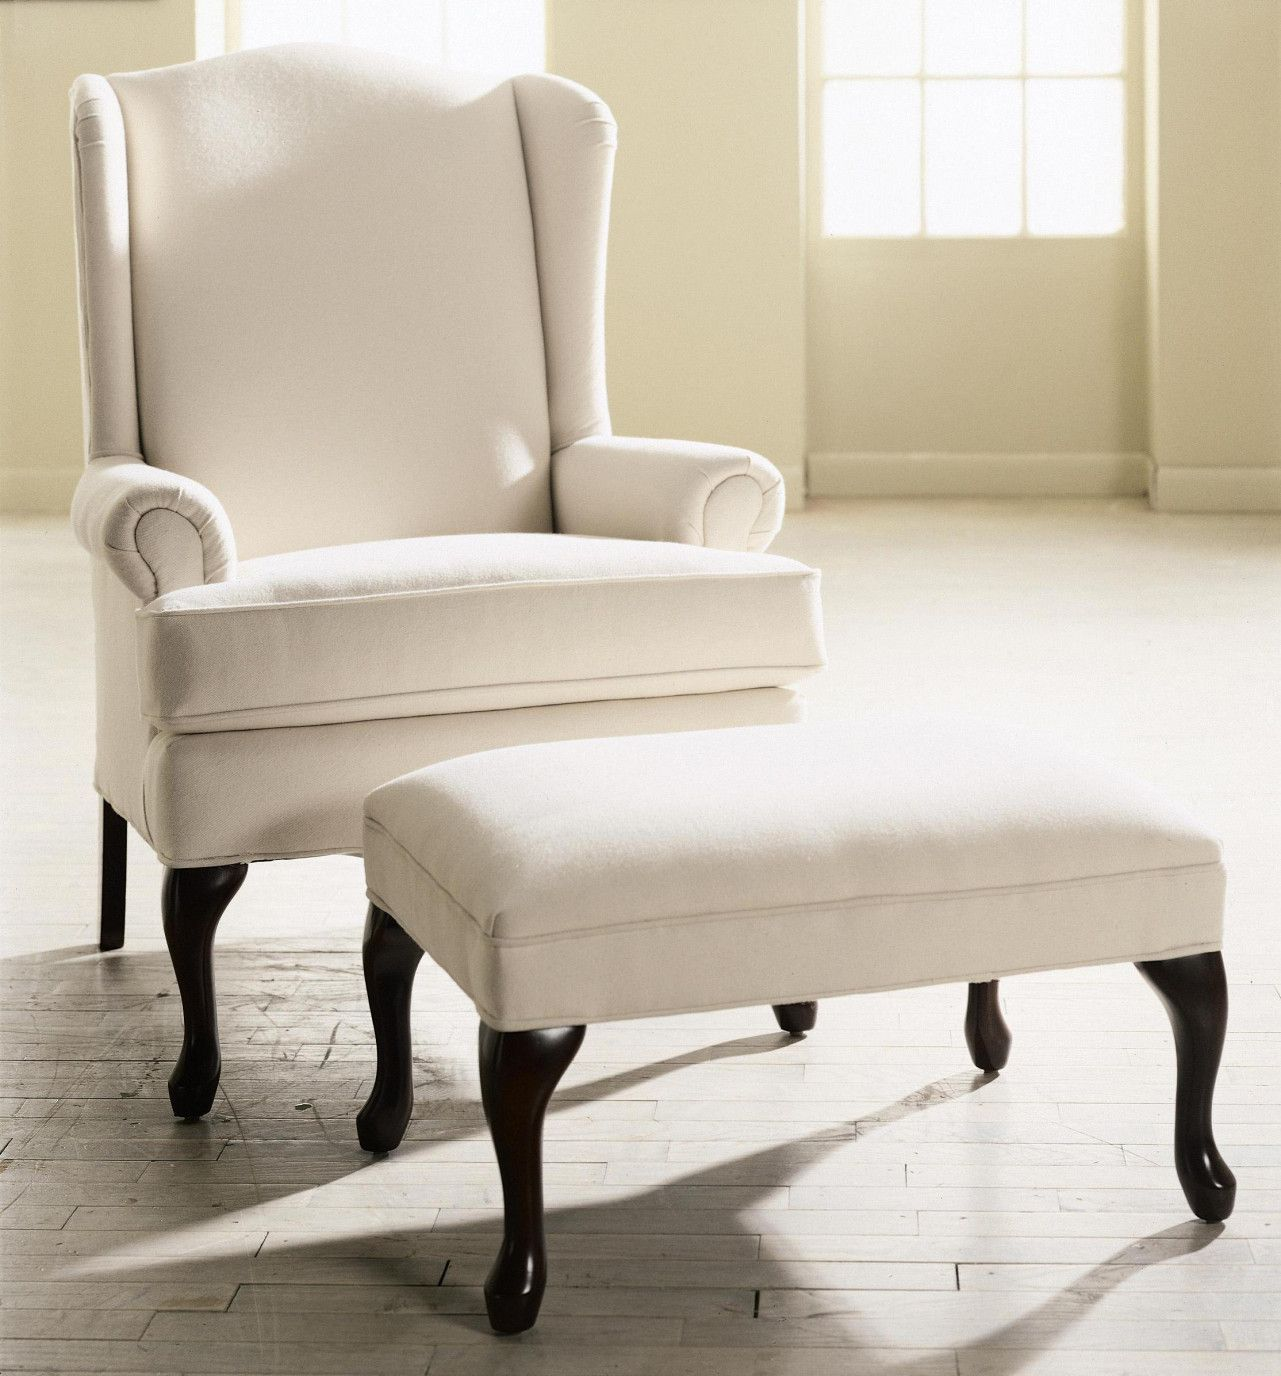 Small Bedroom Chair With Ottoman Interior Design